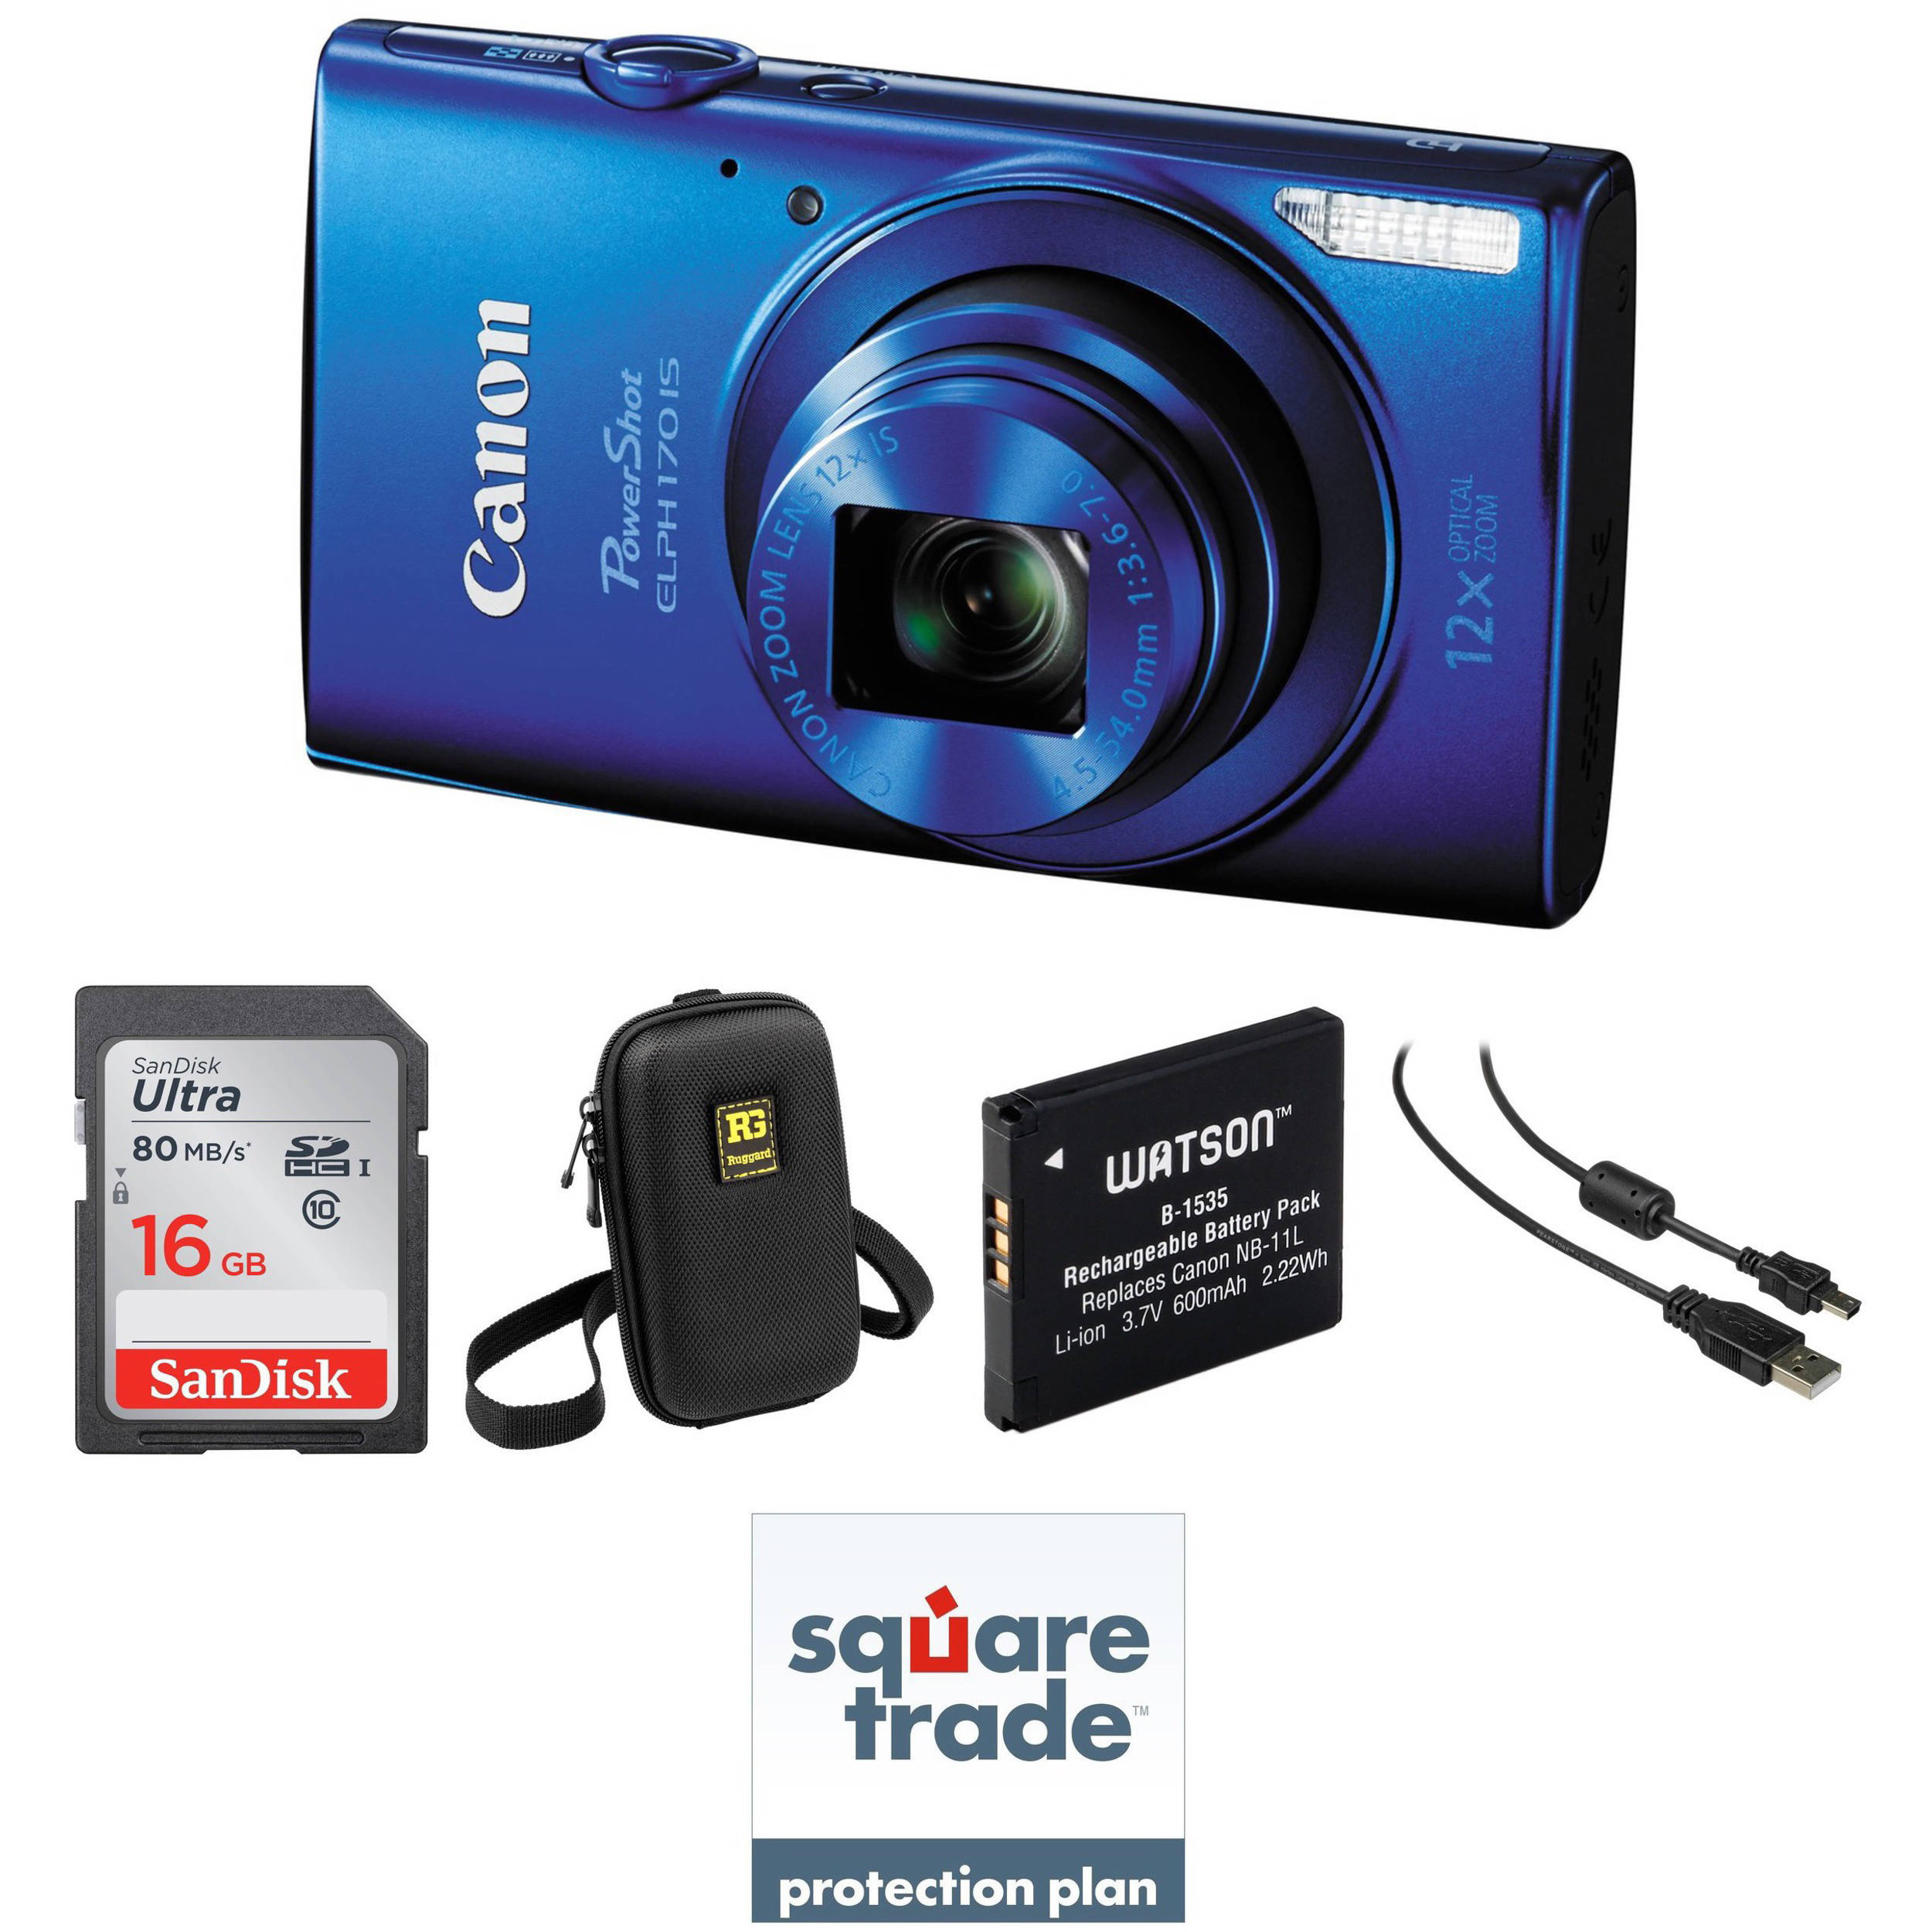 Sparkling Canon Powershot Elph Is Digital Camera Kit Canon Powershot Elph Is Digital Camera Kit Canon Powershot Elph 170 Is Battery Charger Canon Powershot Elph 170 Is Lens Error dpreview Canon Powershot Elph 170 Is